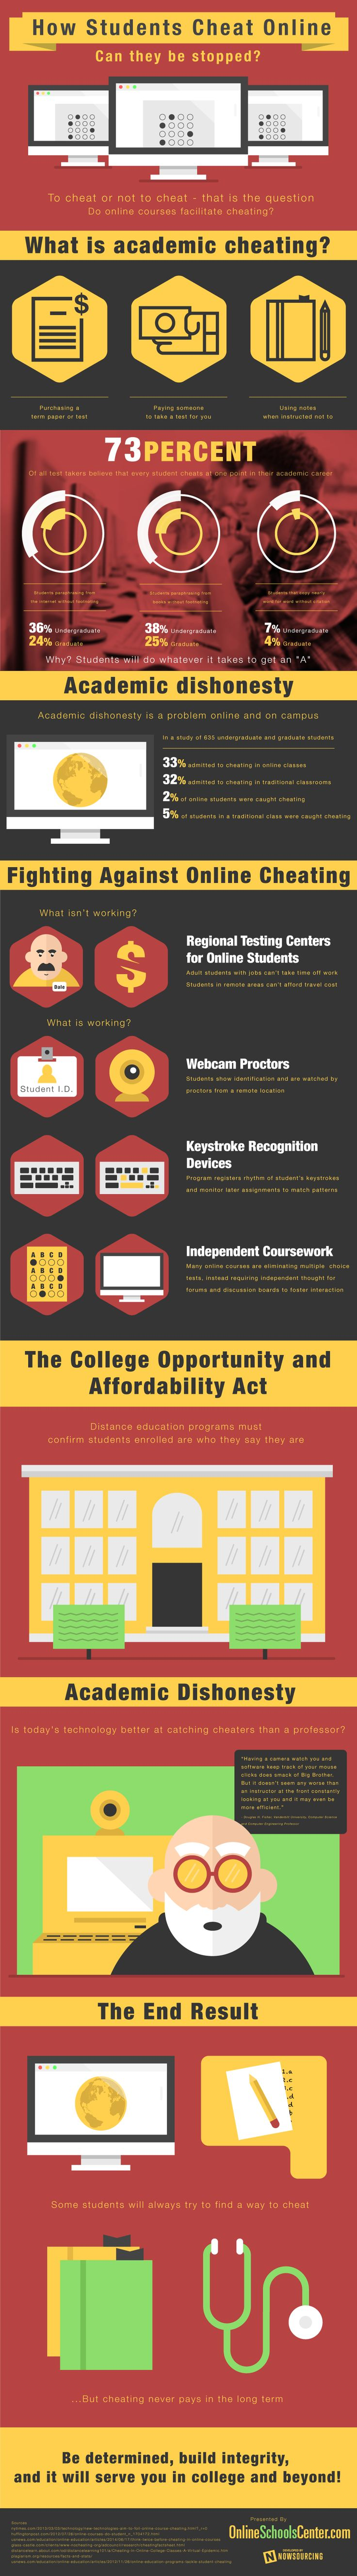 "Share this infographic on your site! Source: OnlineSchoolsCenter.com How Students Cheat Online ""Can they be stopped?"" To Cheat or not to cheat- an age old question that has taken on new meaning with the inception of online college courses. The question we are facing today- are online courses really giving students the go ahead to …"